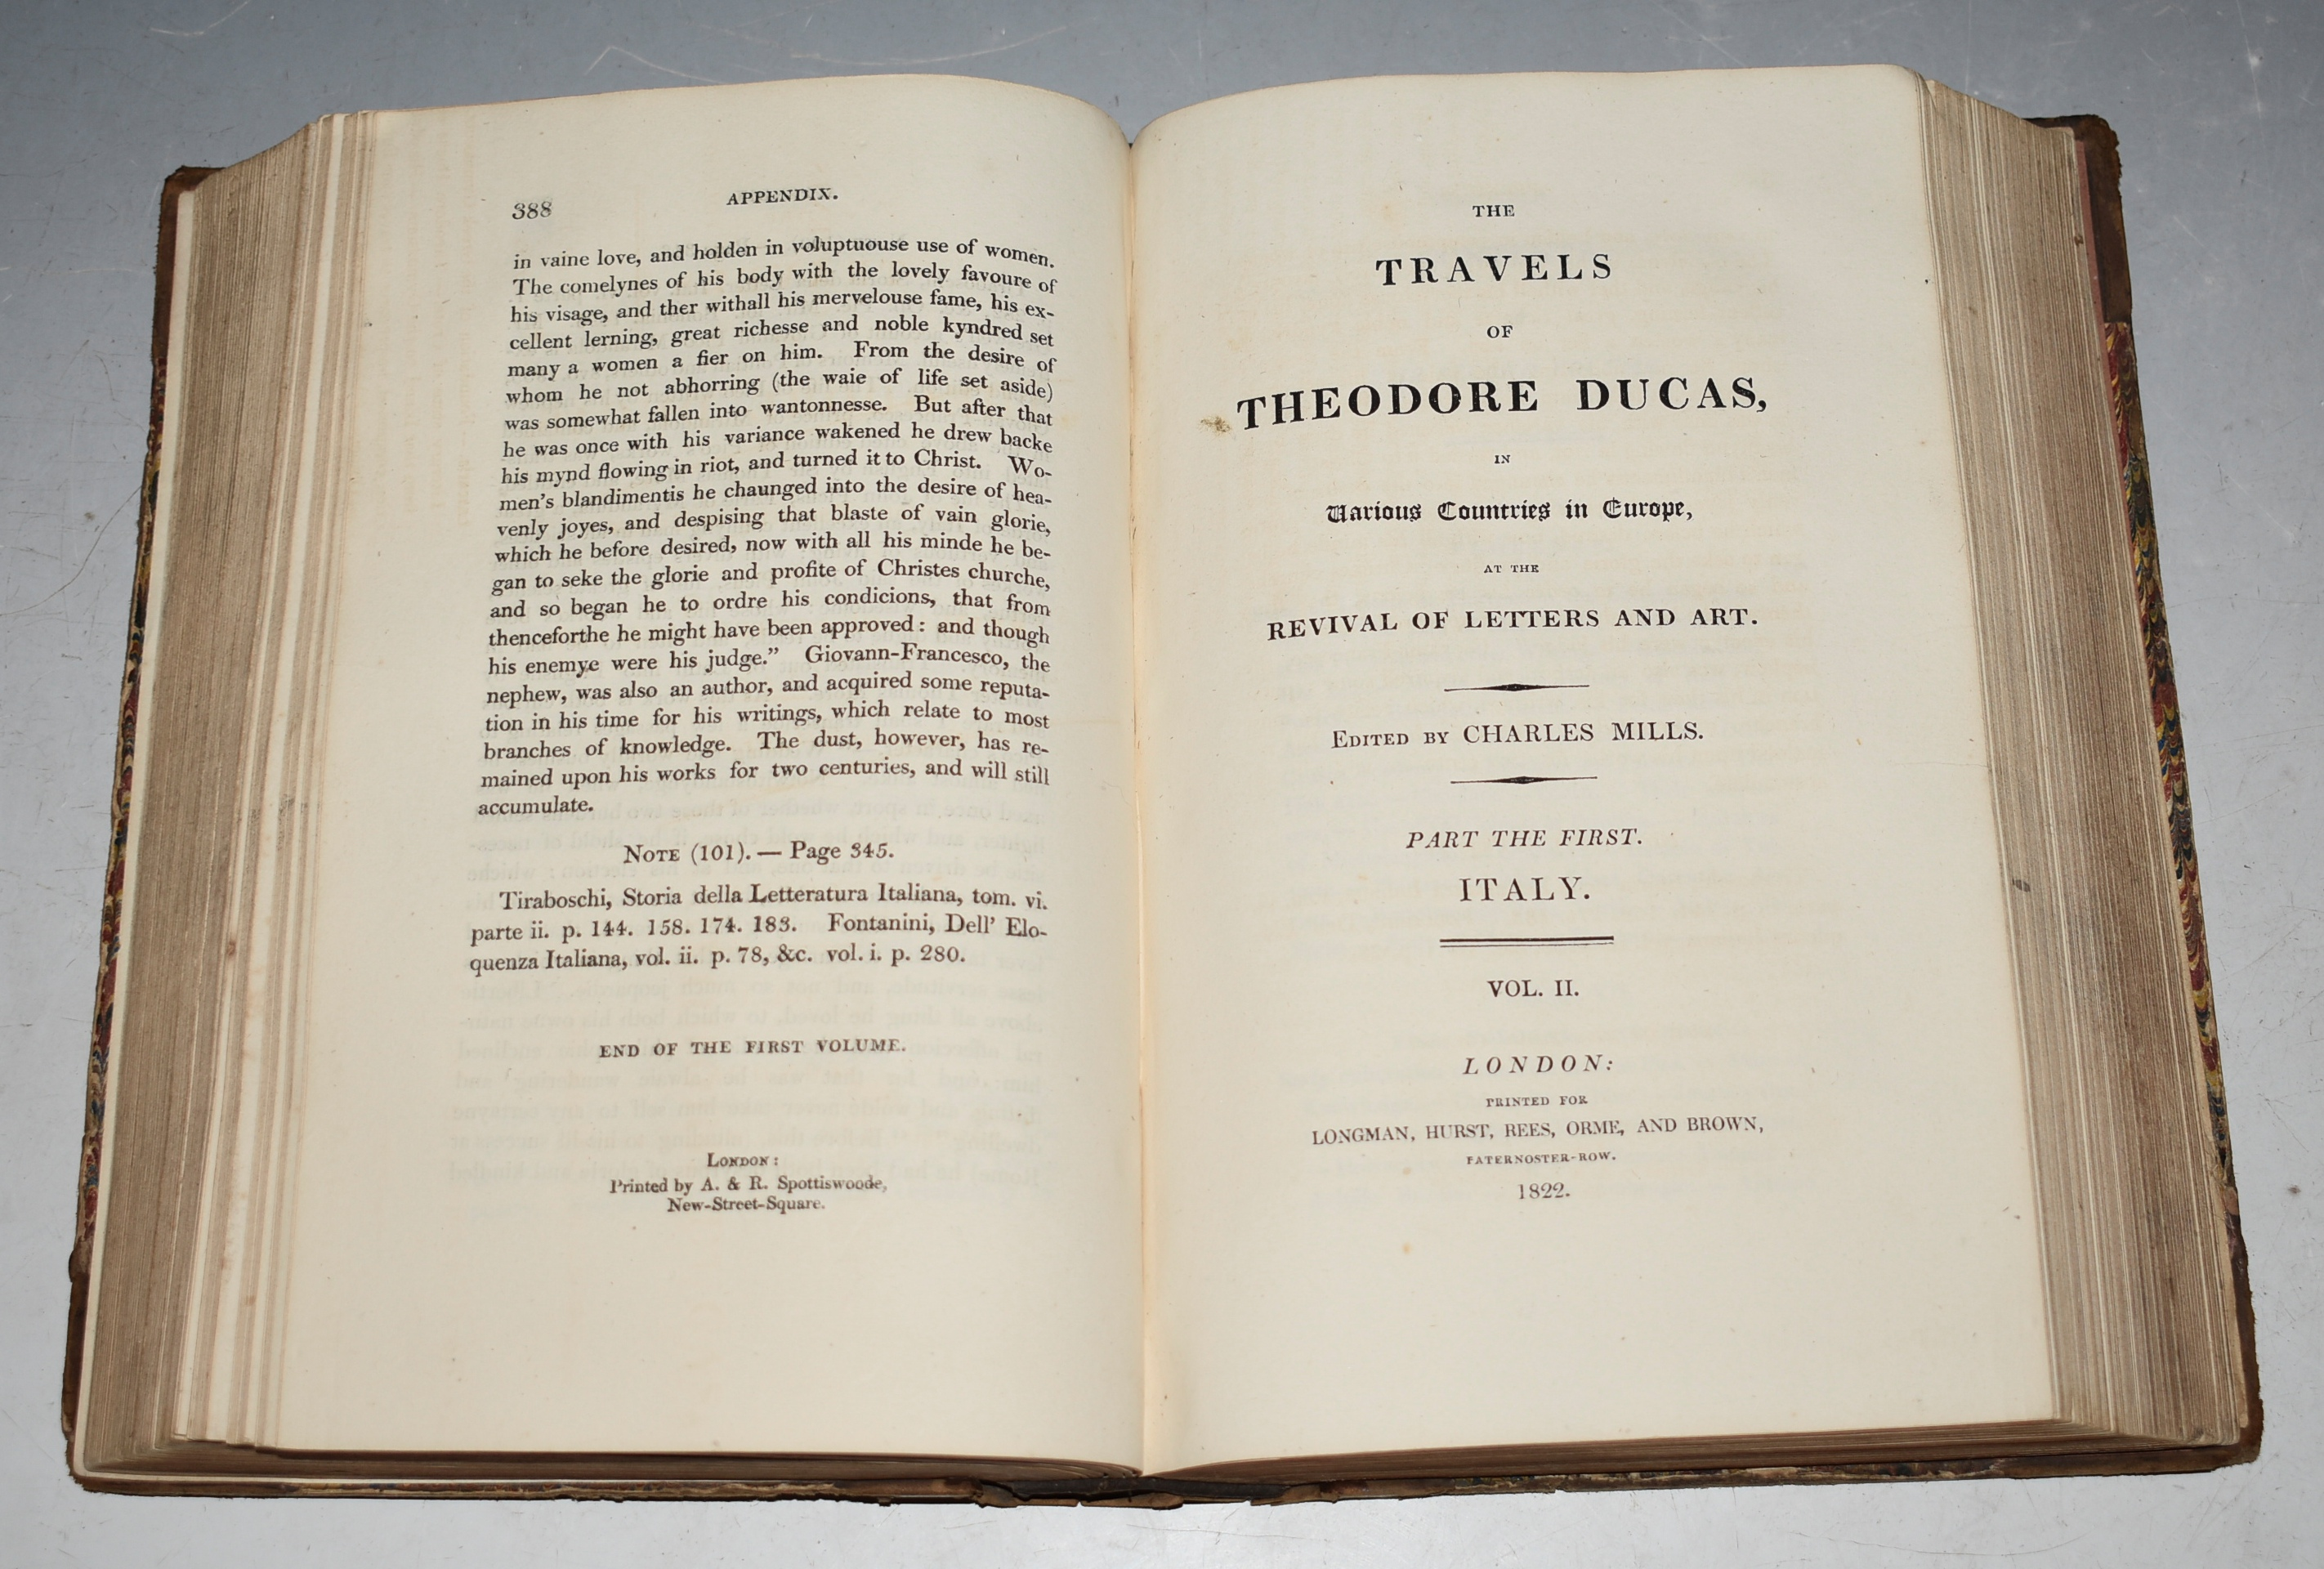 Image for The Travels of Theodore Ducas, In Various Countries in Europe, at the Revival of Letters and Art. Edited by Charles Mills. Two Parts Bound in One Volume: Part The First. Italy.